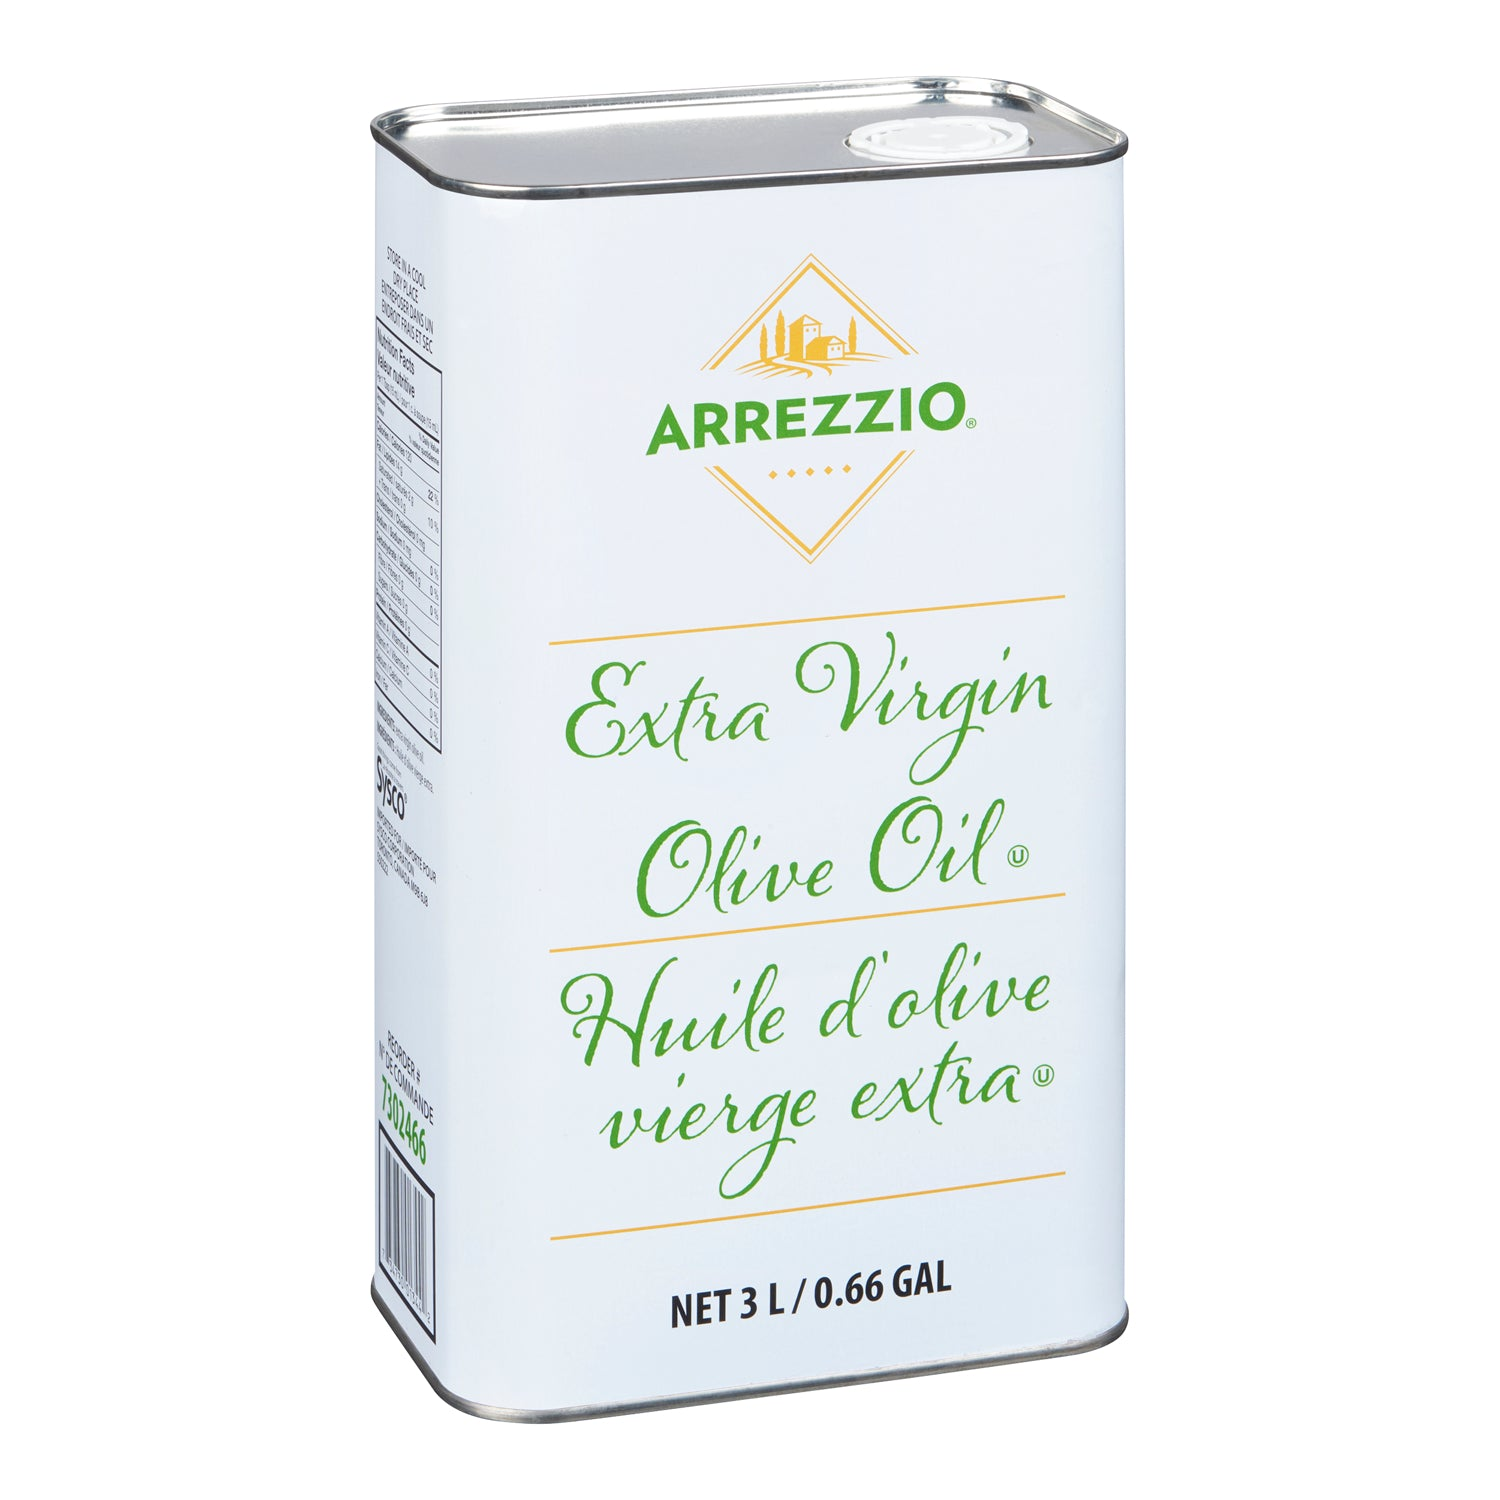 Arrezzio Extra Virgin Olive Oil 3 L - 1 Pack [$9.16/litre]